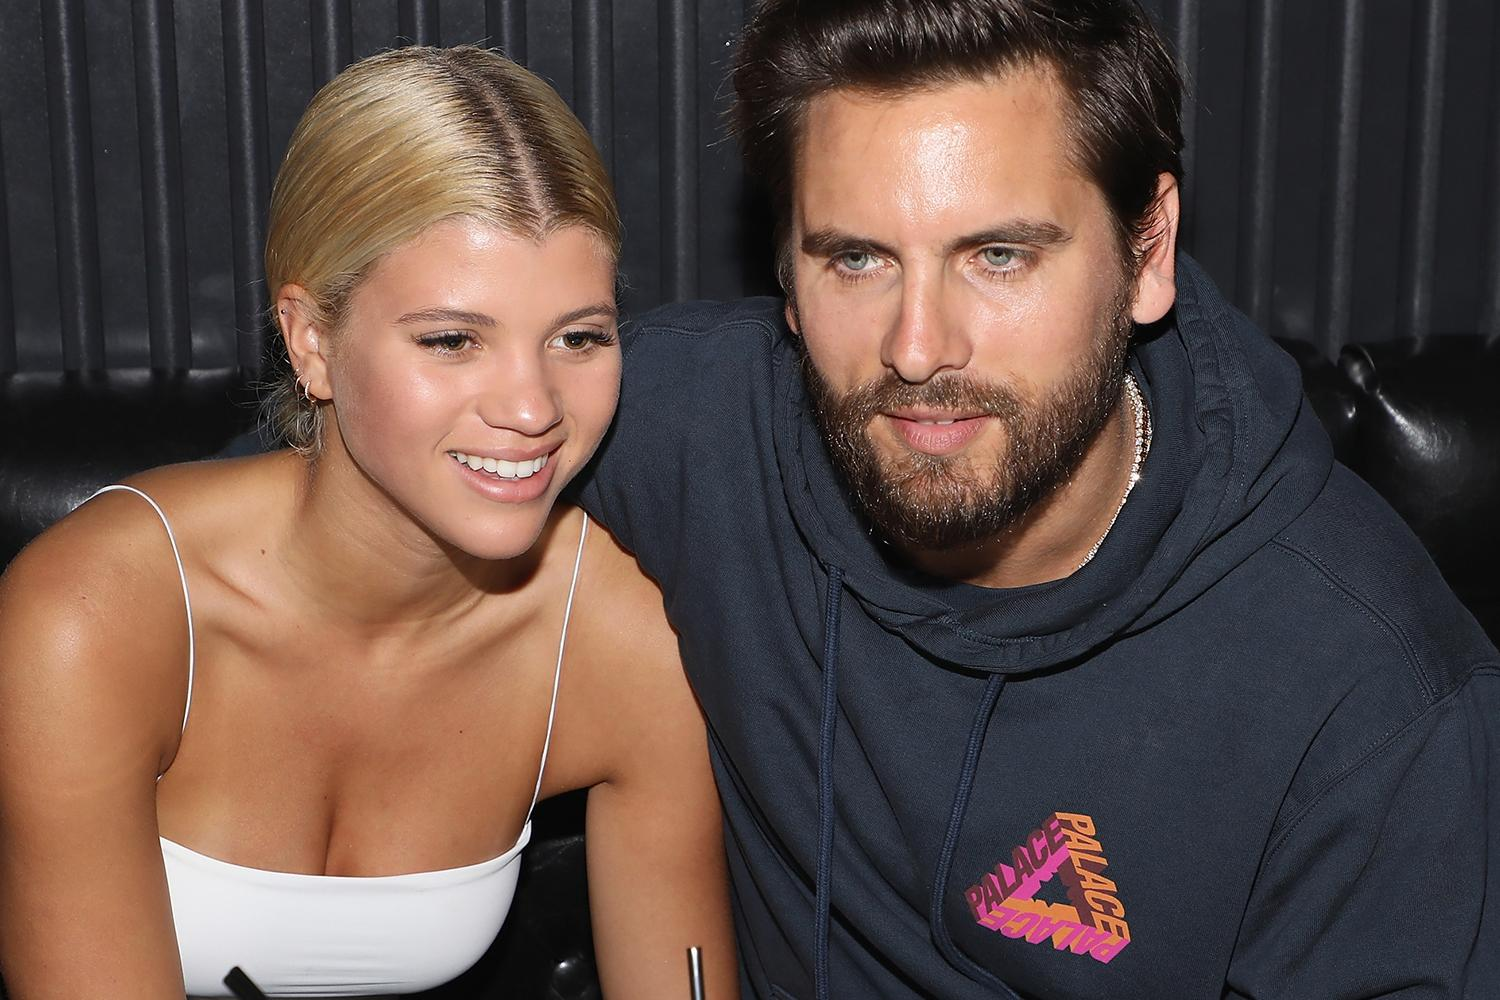 Sofia Richie Was Shocked Scott Disick Got Her A Car For Her Birthday - Here's Why The Expensive Gift Means A Lot!